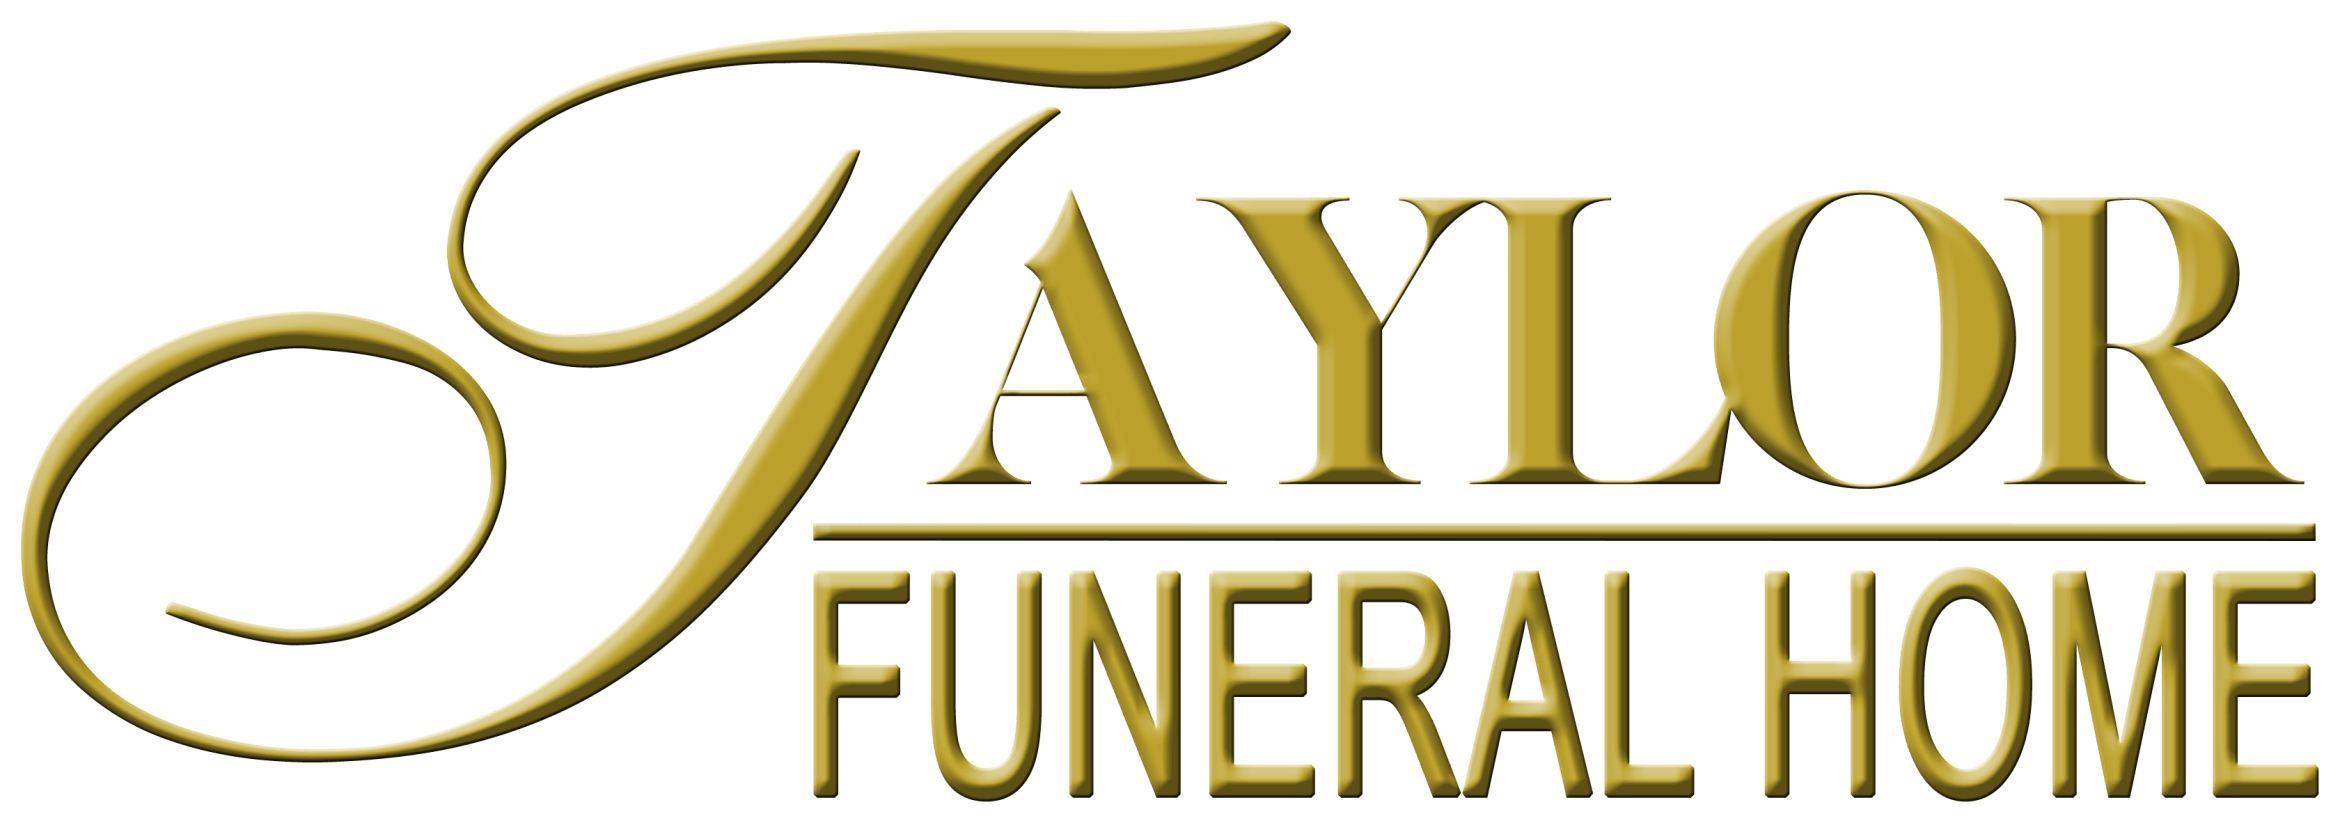 Taylor Funeral Home | Amanda OH funeral home and cremation